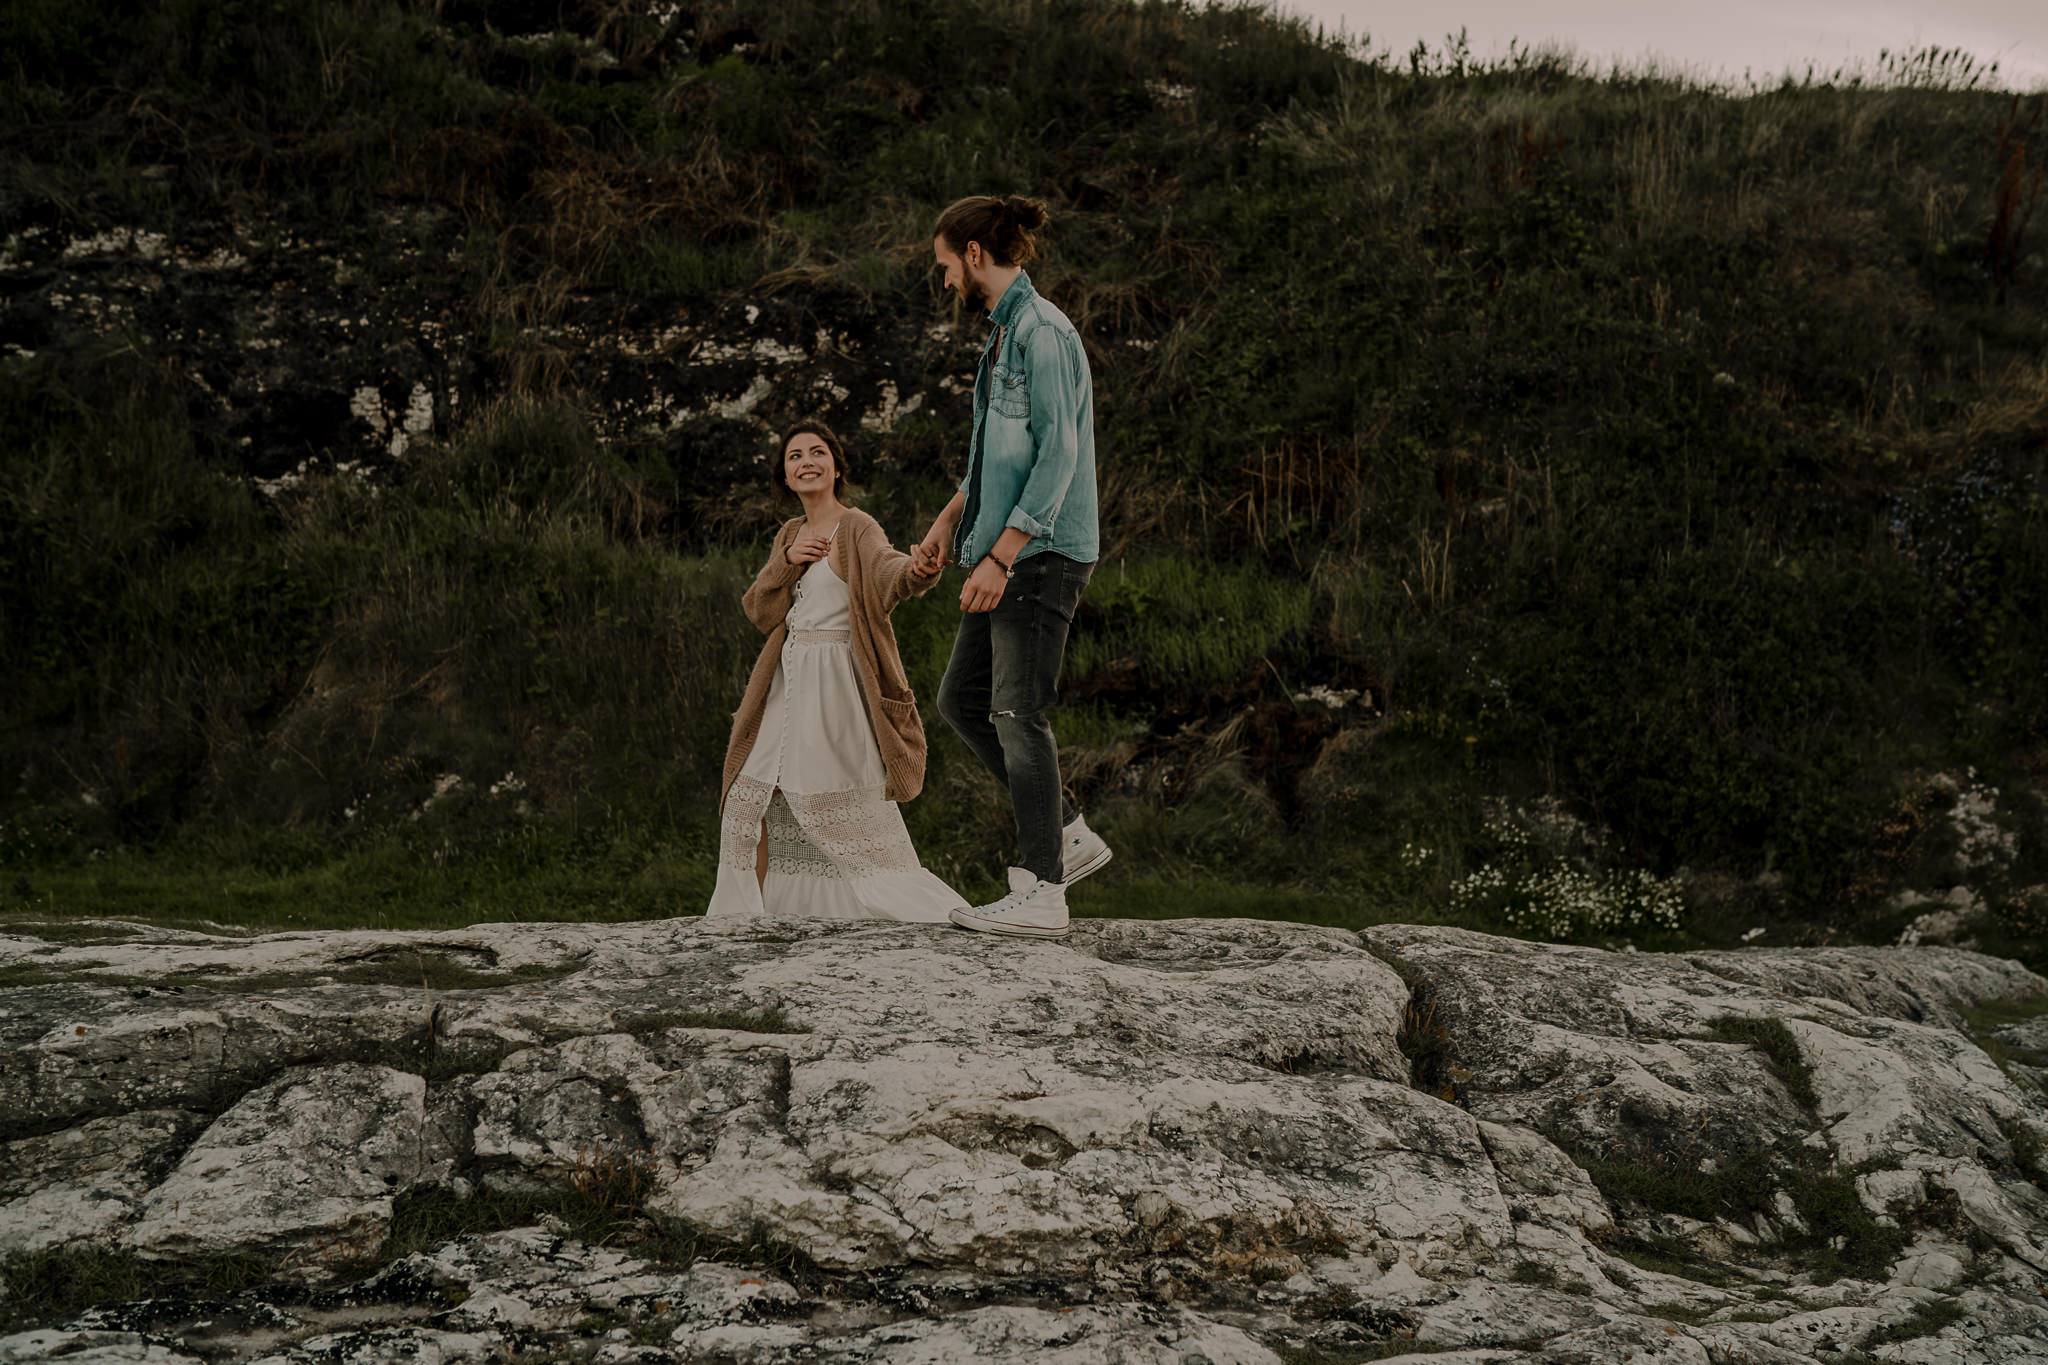 causeway coast hipster couple walking during their engagement photoshoot